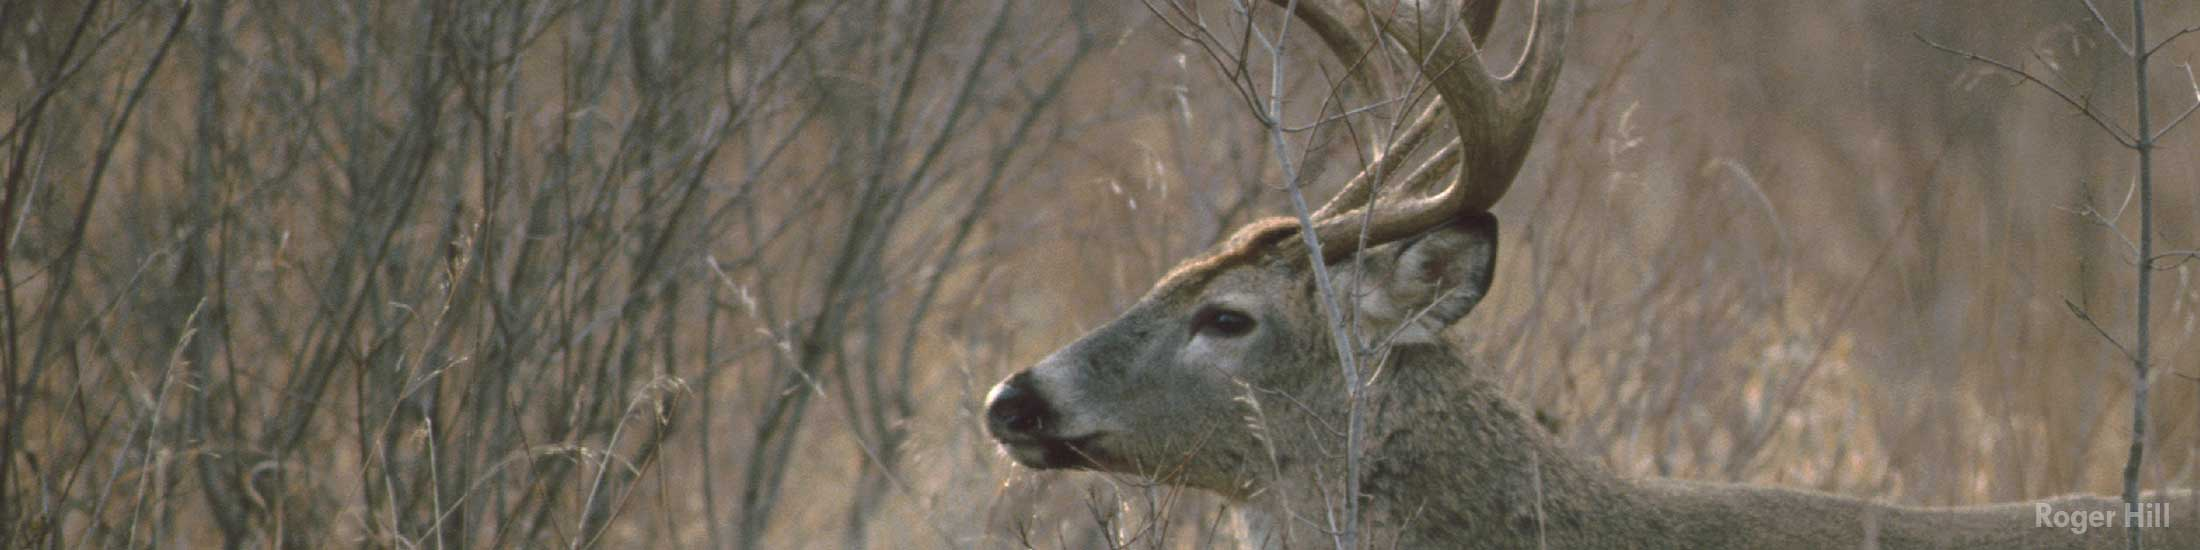 Applications for iowa hunting and wildlife licenses for Iowa fishing regulations